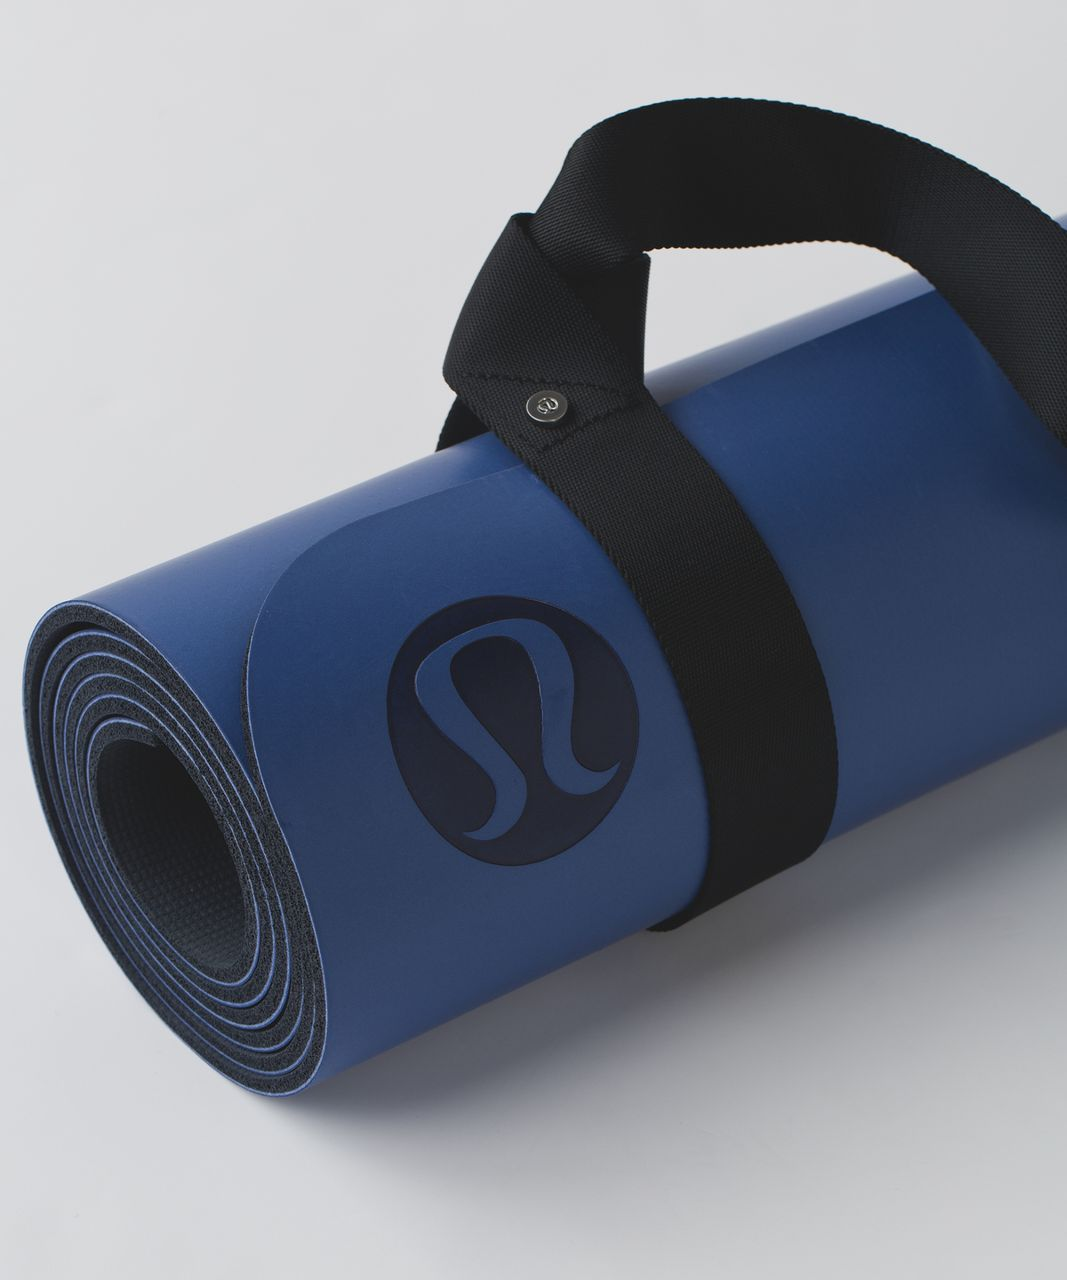 Lululemon Loop It Up Mat Strap - Black